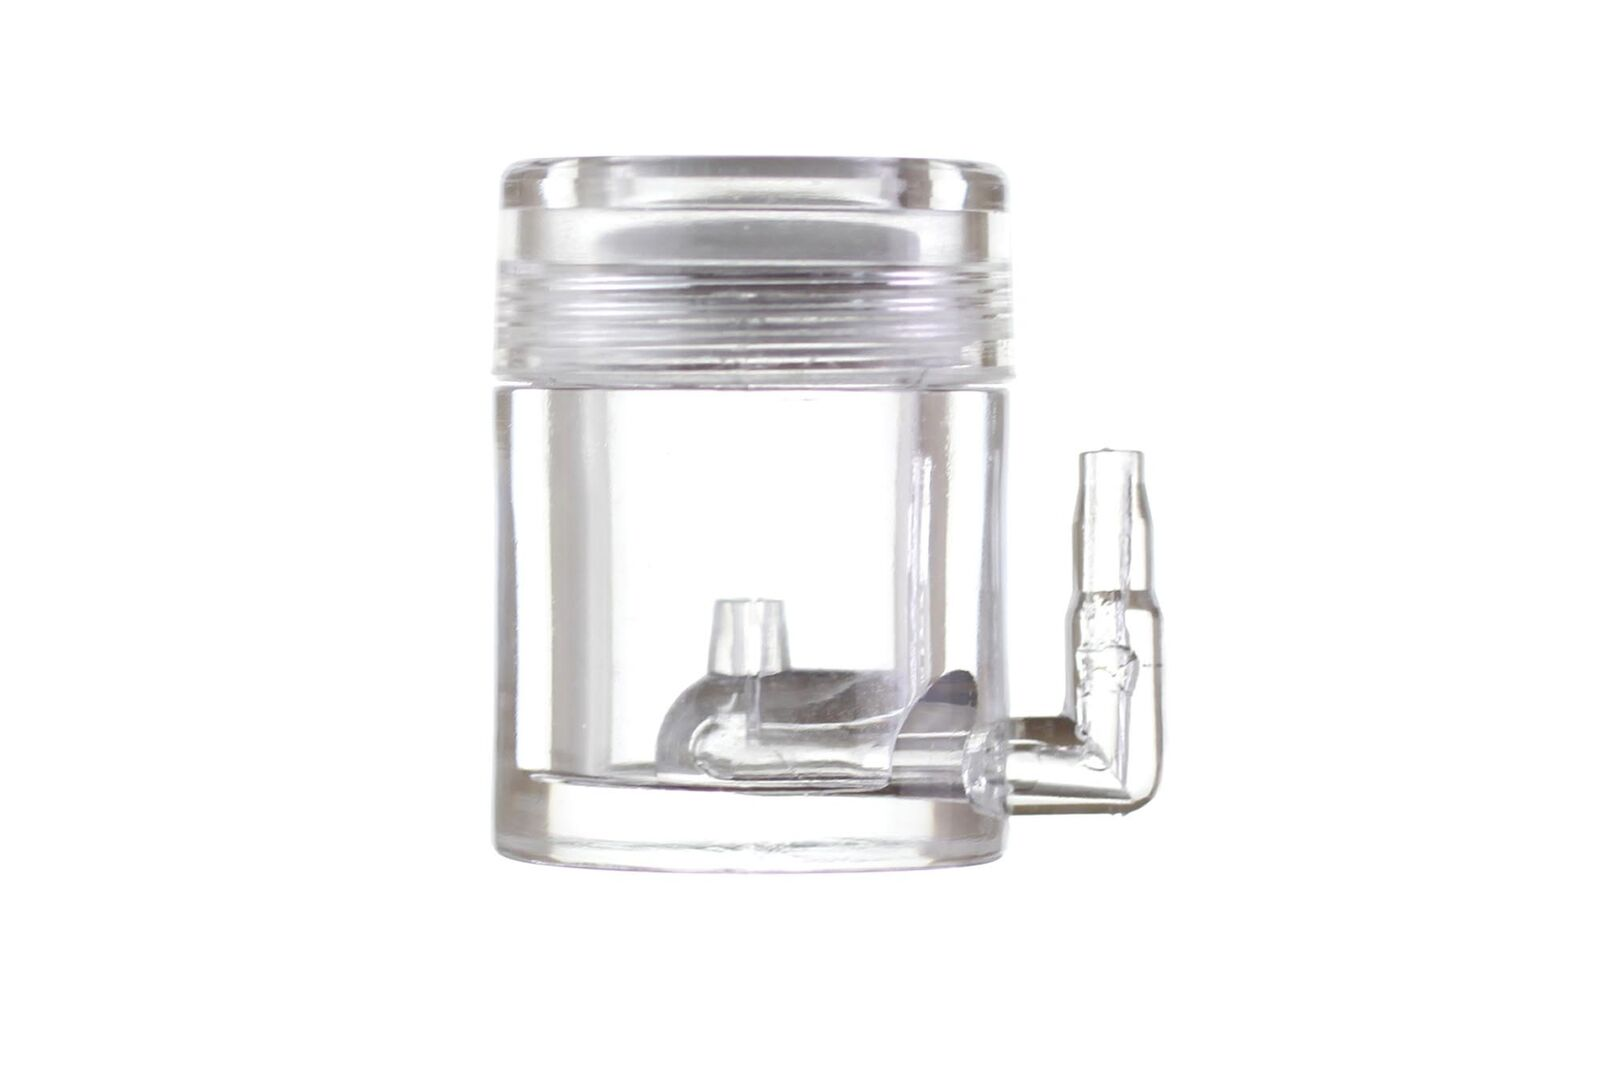 Acrylic CO2 Diffuser for Planted Aquariums (Small & Large Sizes)